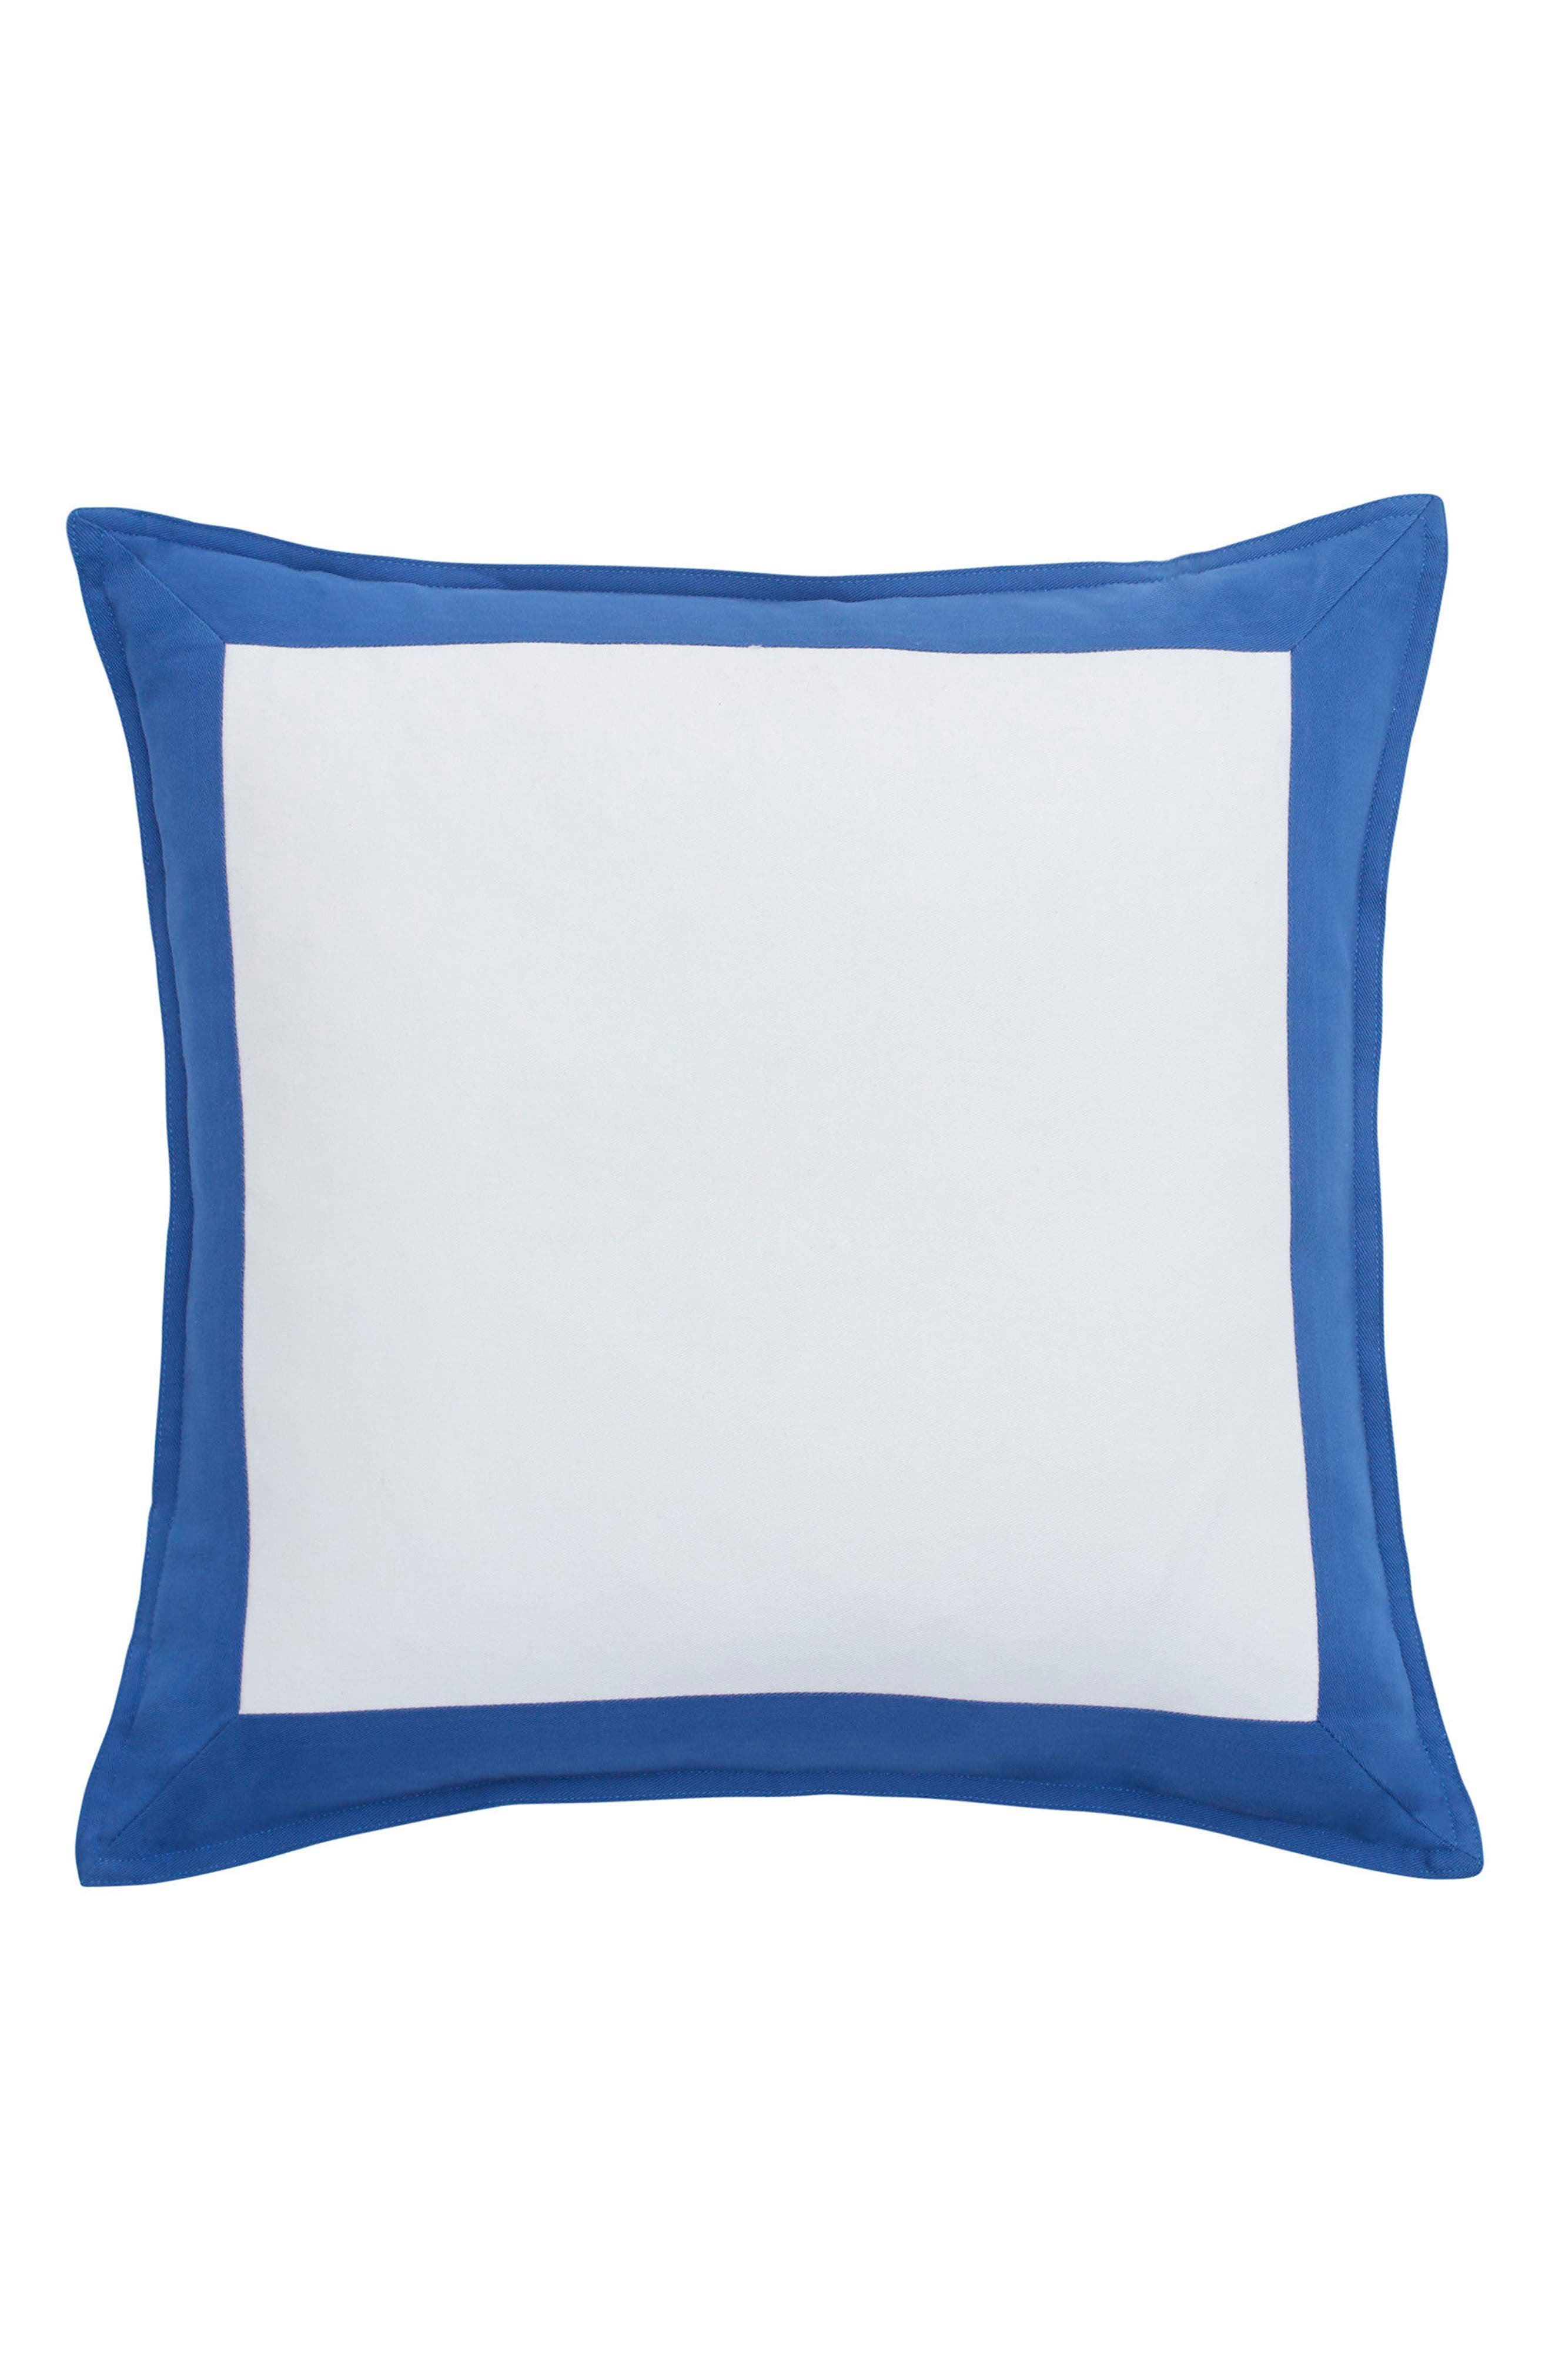 Main Image - Southern Tide Skipjack Chino Accent Pillow